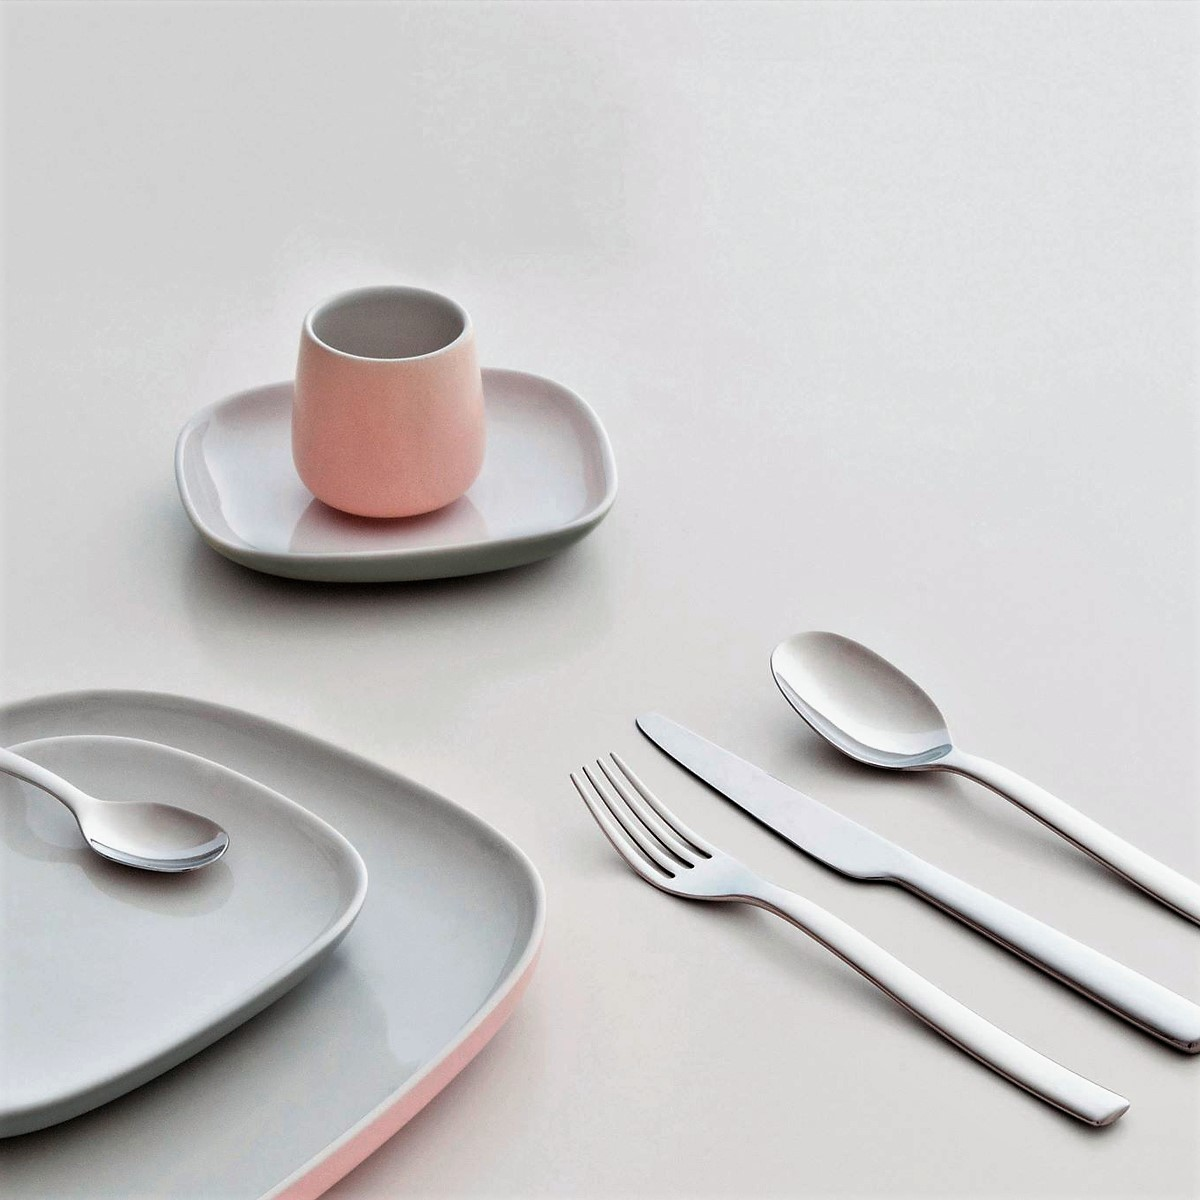 alessi cutlery cutlery sets ovale cutlery in stainless steel. Black Bedroom Furniture Sets. Home Design Ideas